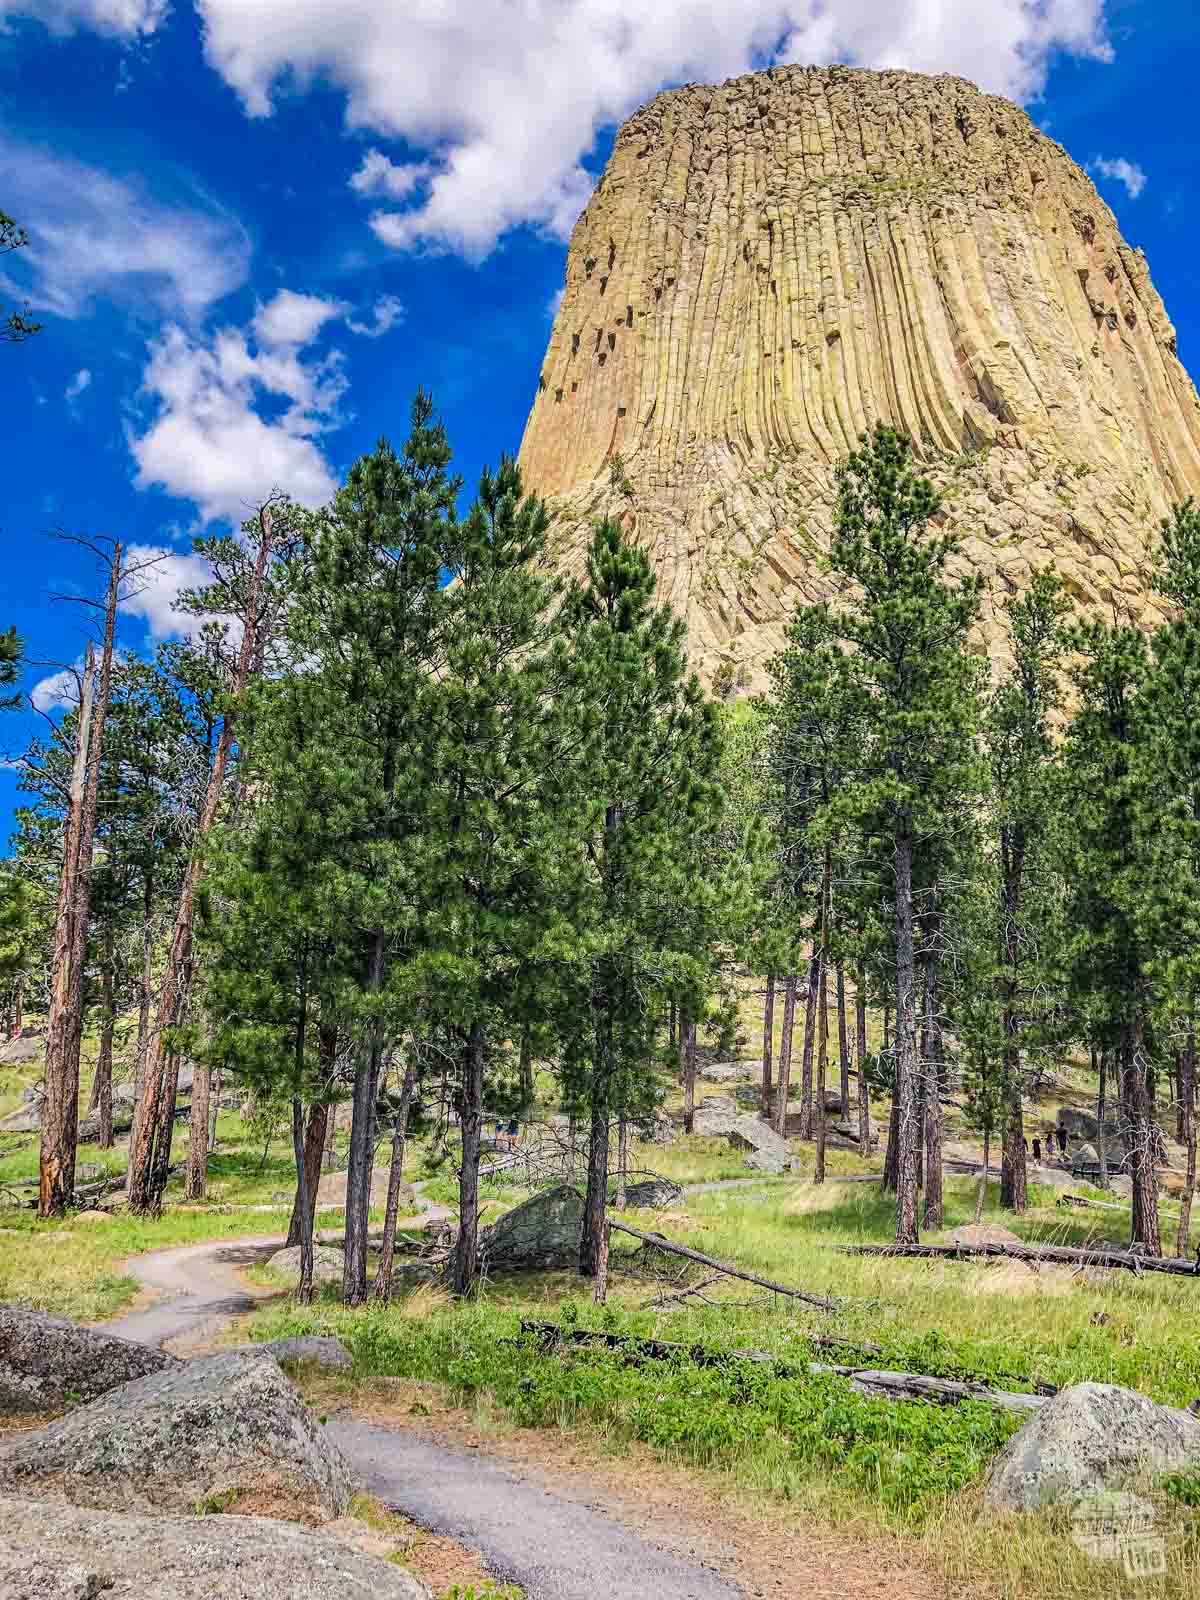 Devils Tower with the Tower Trail in the foreground.